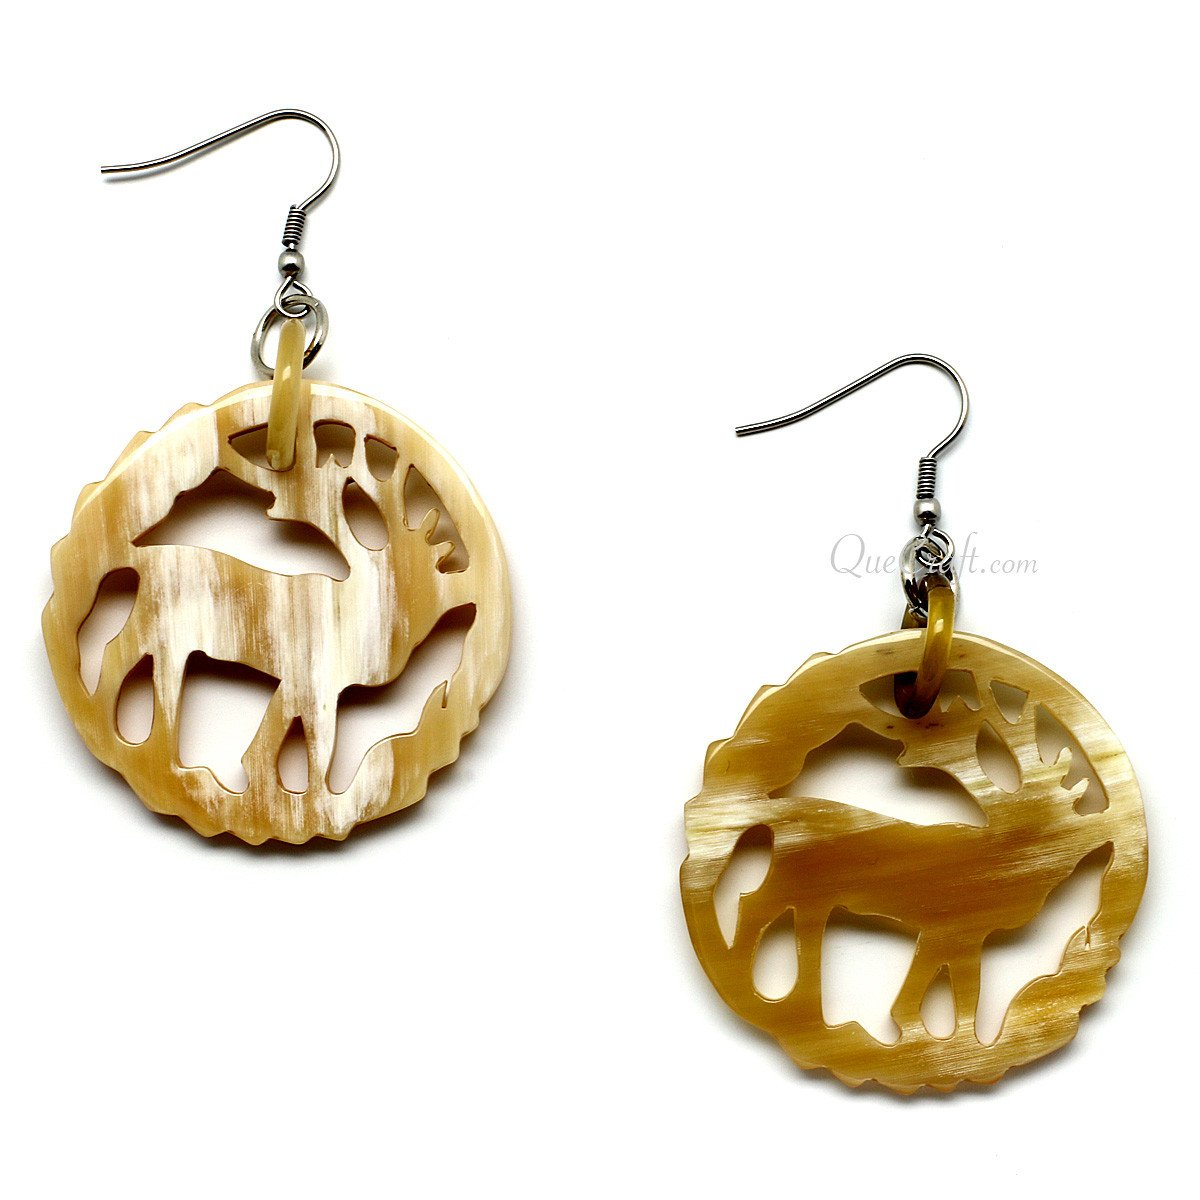 Horn Earrings #10053 - HORN.JEWELRY by QueCraft